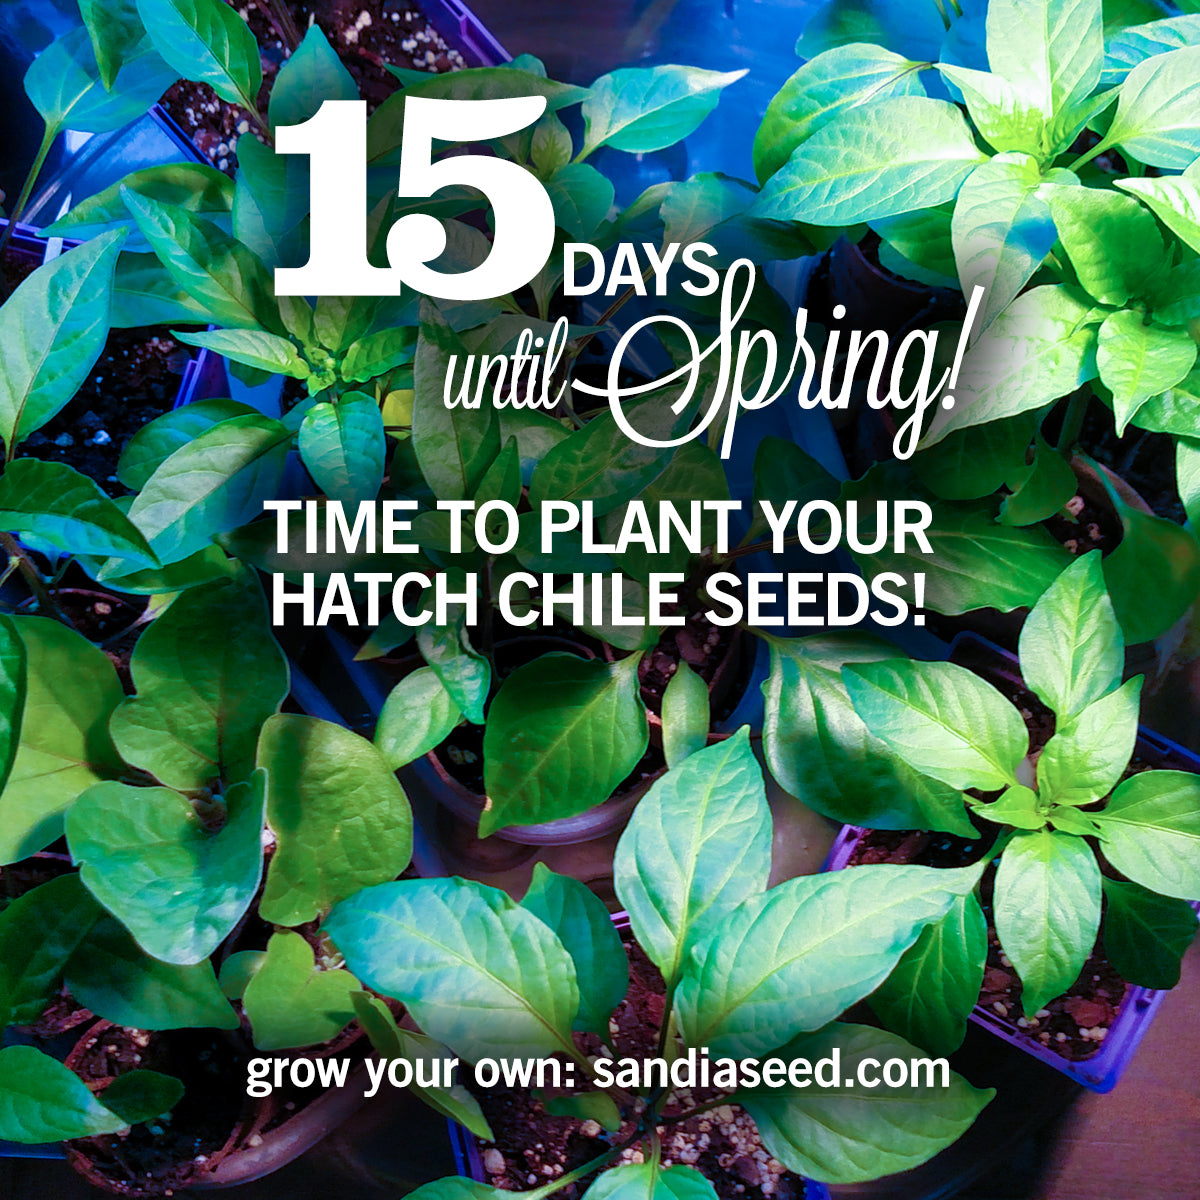 Time to Plant Hatch Chile Seeds